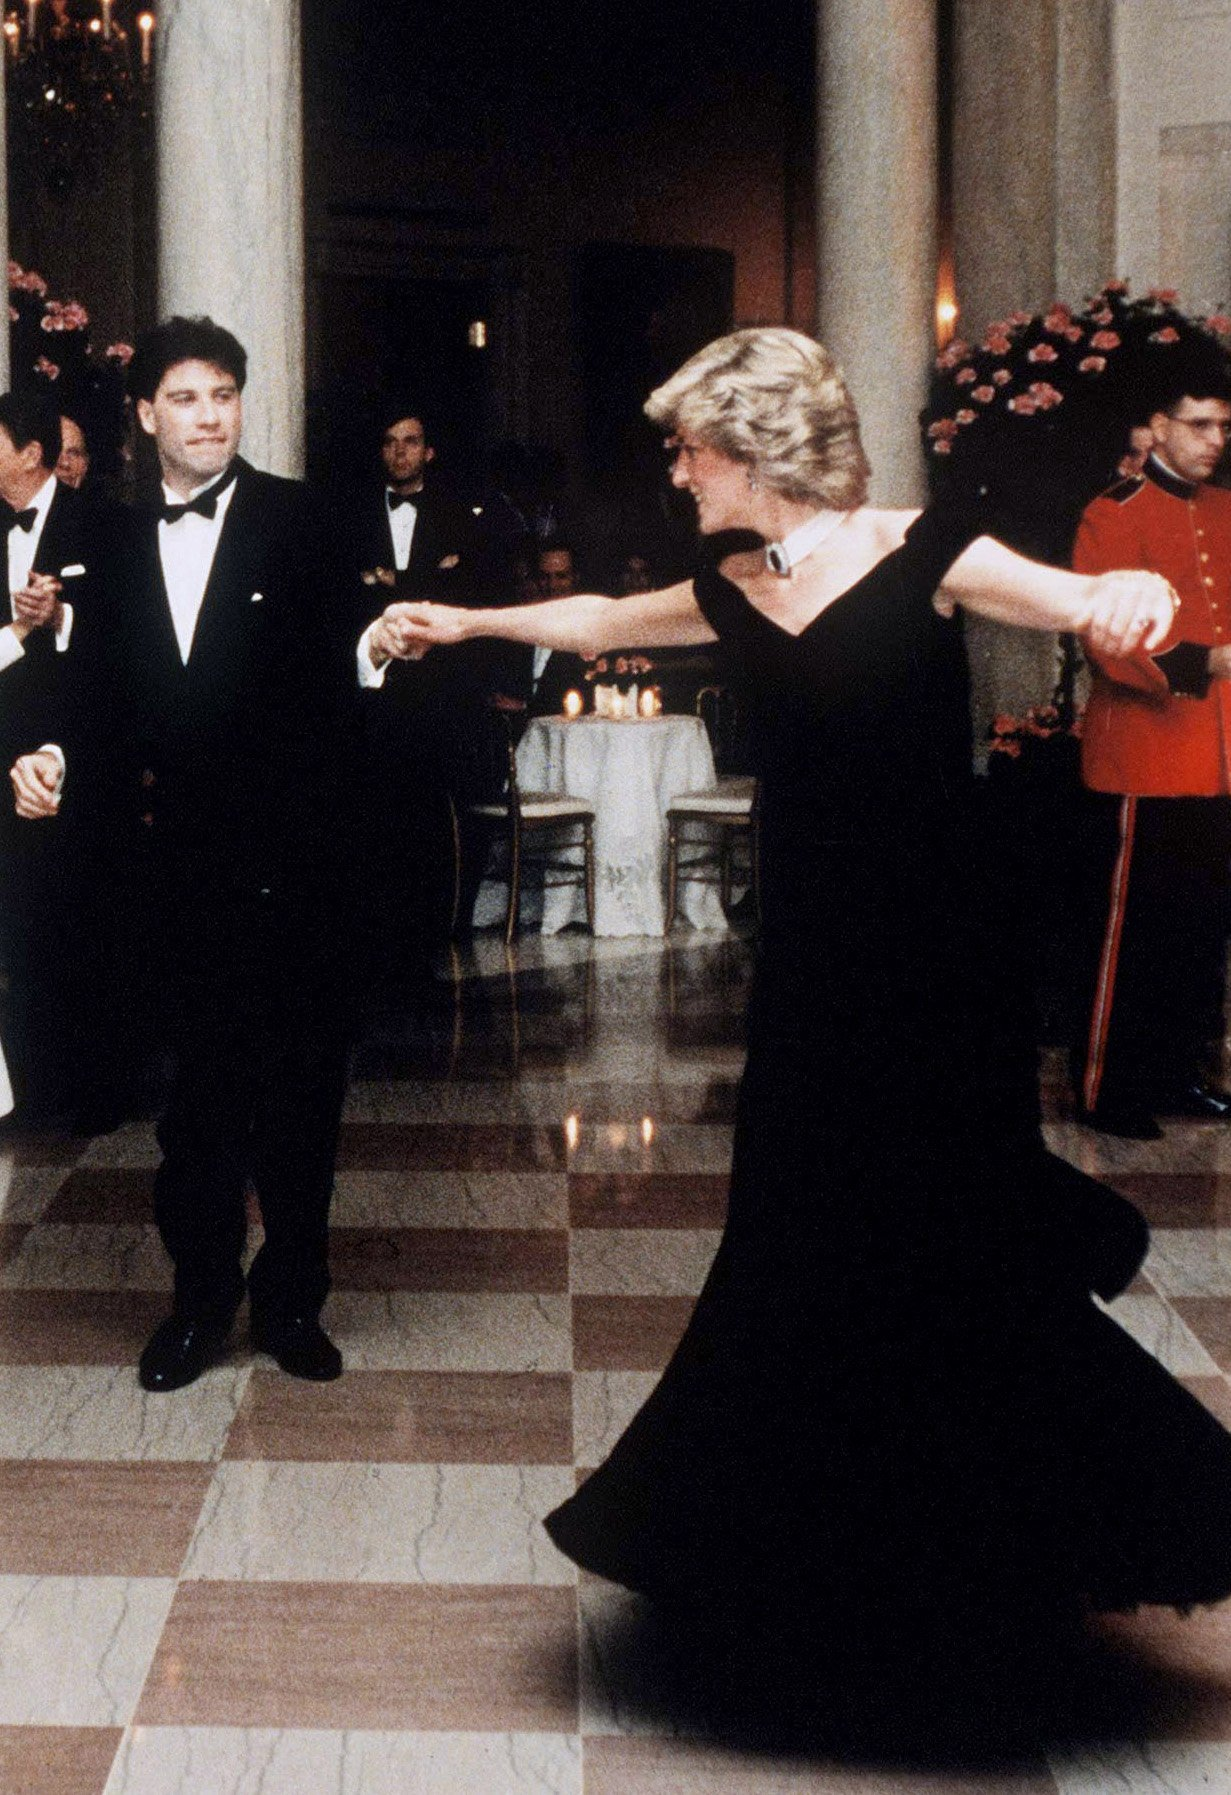 Princess Diana dances with movie star John Travolta at the White House on November 9, 1985, in Washington DC | Photo: Anwar Hussein/Getty Images